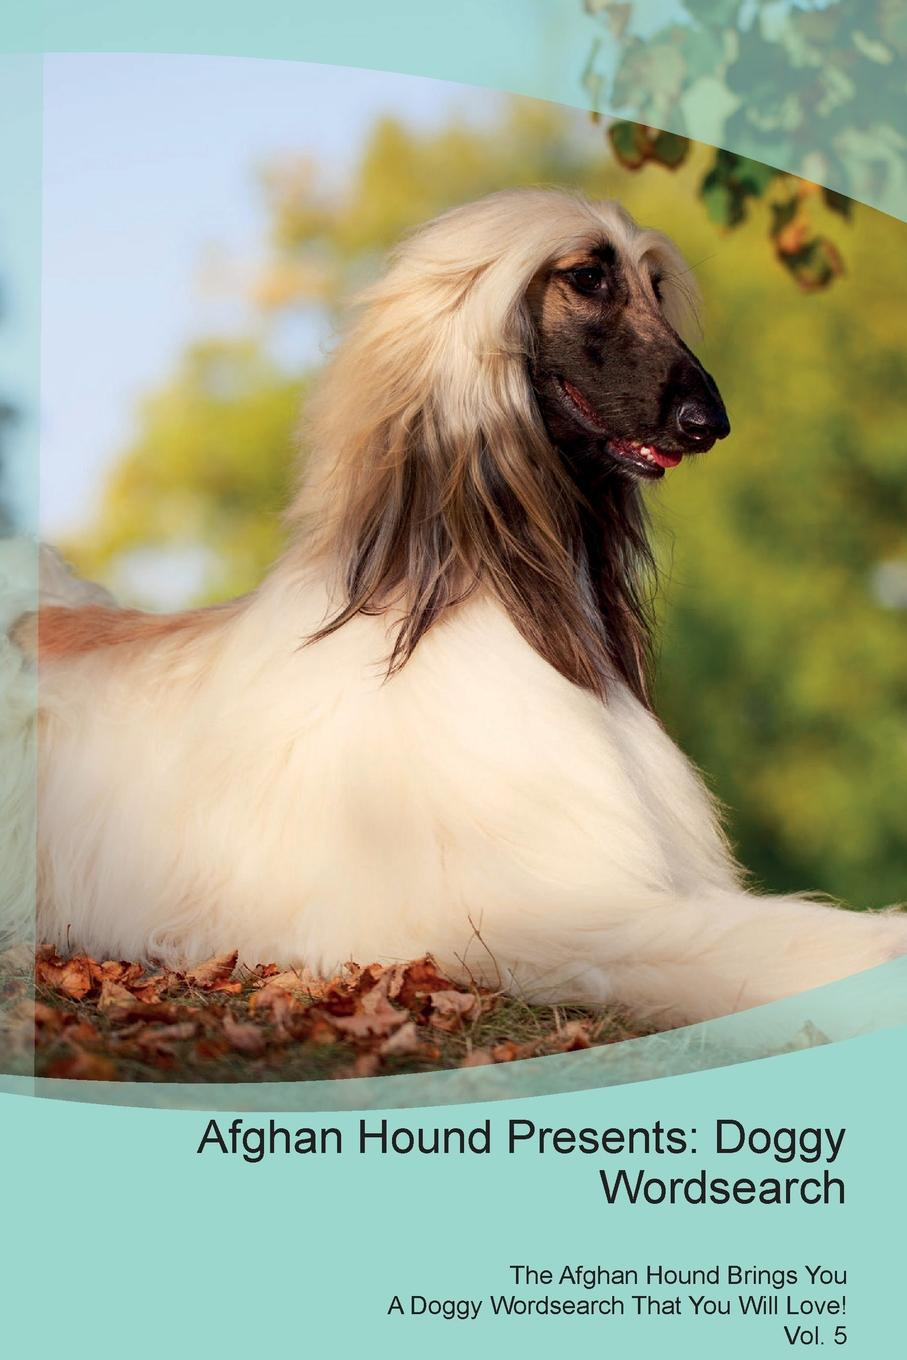 Doggy Puzzles Afghan Hound Presents. Wordsearch The Brings You A That Will Love! Vol. 5